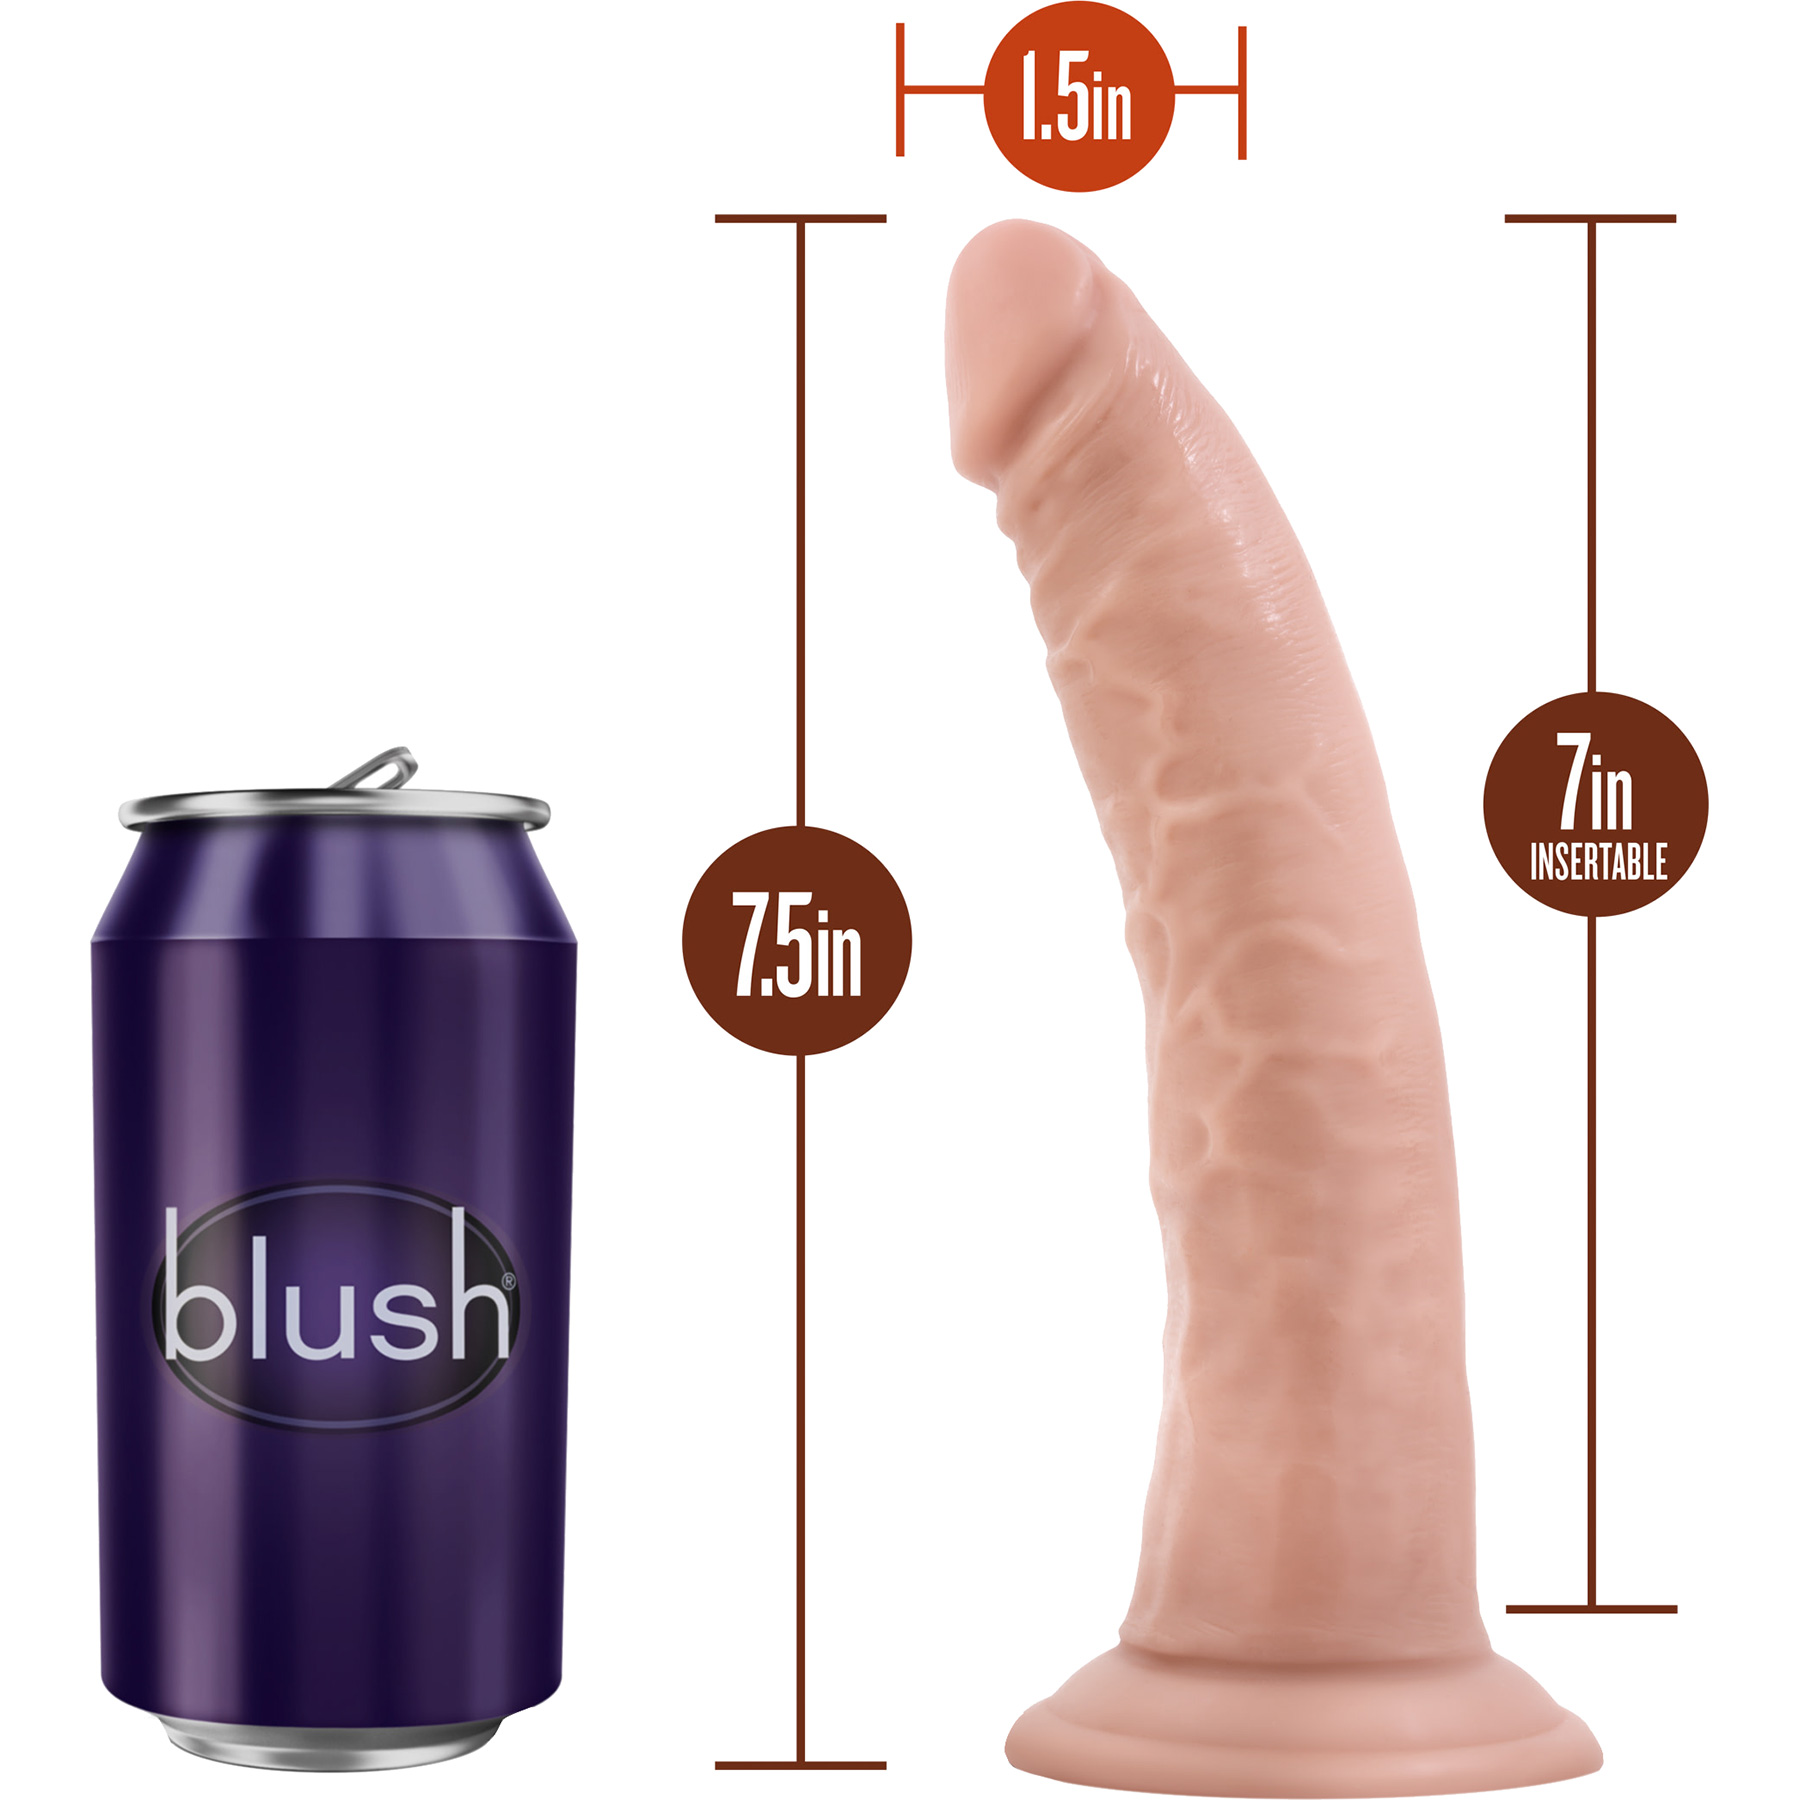 Dr. Skin 7 Inch Basic Realistic Dildo With Suction Cup by Blush - Measurements